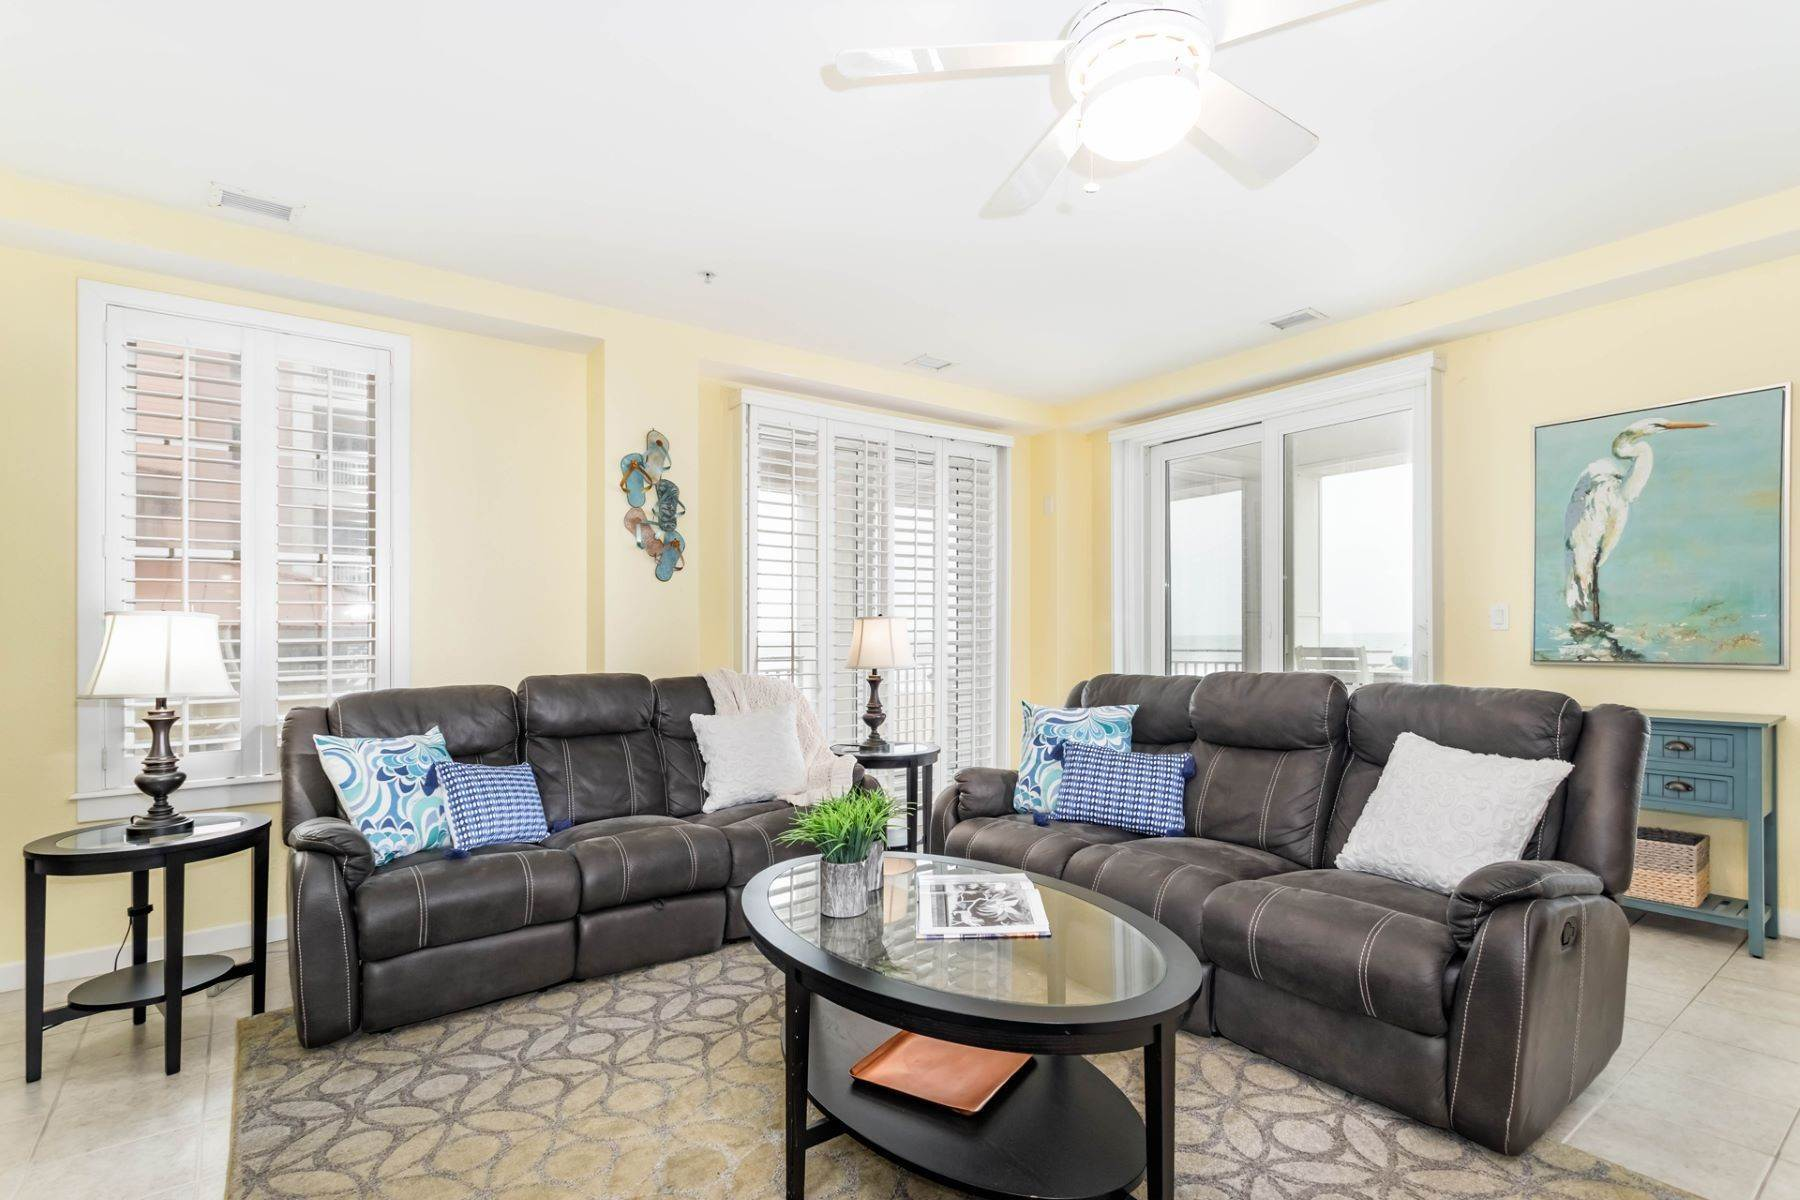 Condominiums for Sale at 3738 Sandpiper Road Unit # 105B - Sandbridge Beach 3738 Sandpiper Road Unit #105 Virginia Beach, Virginia 23456 United States